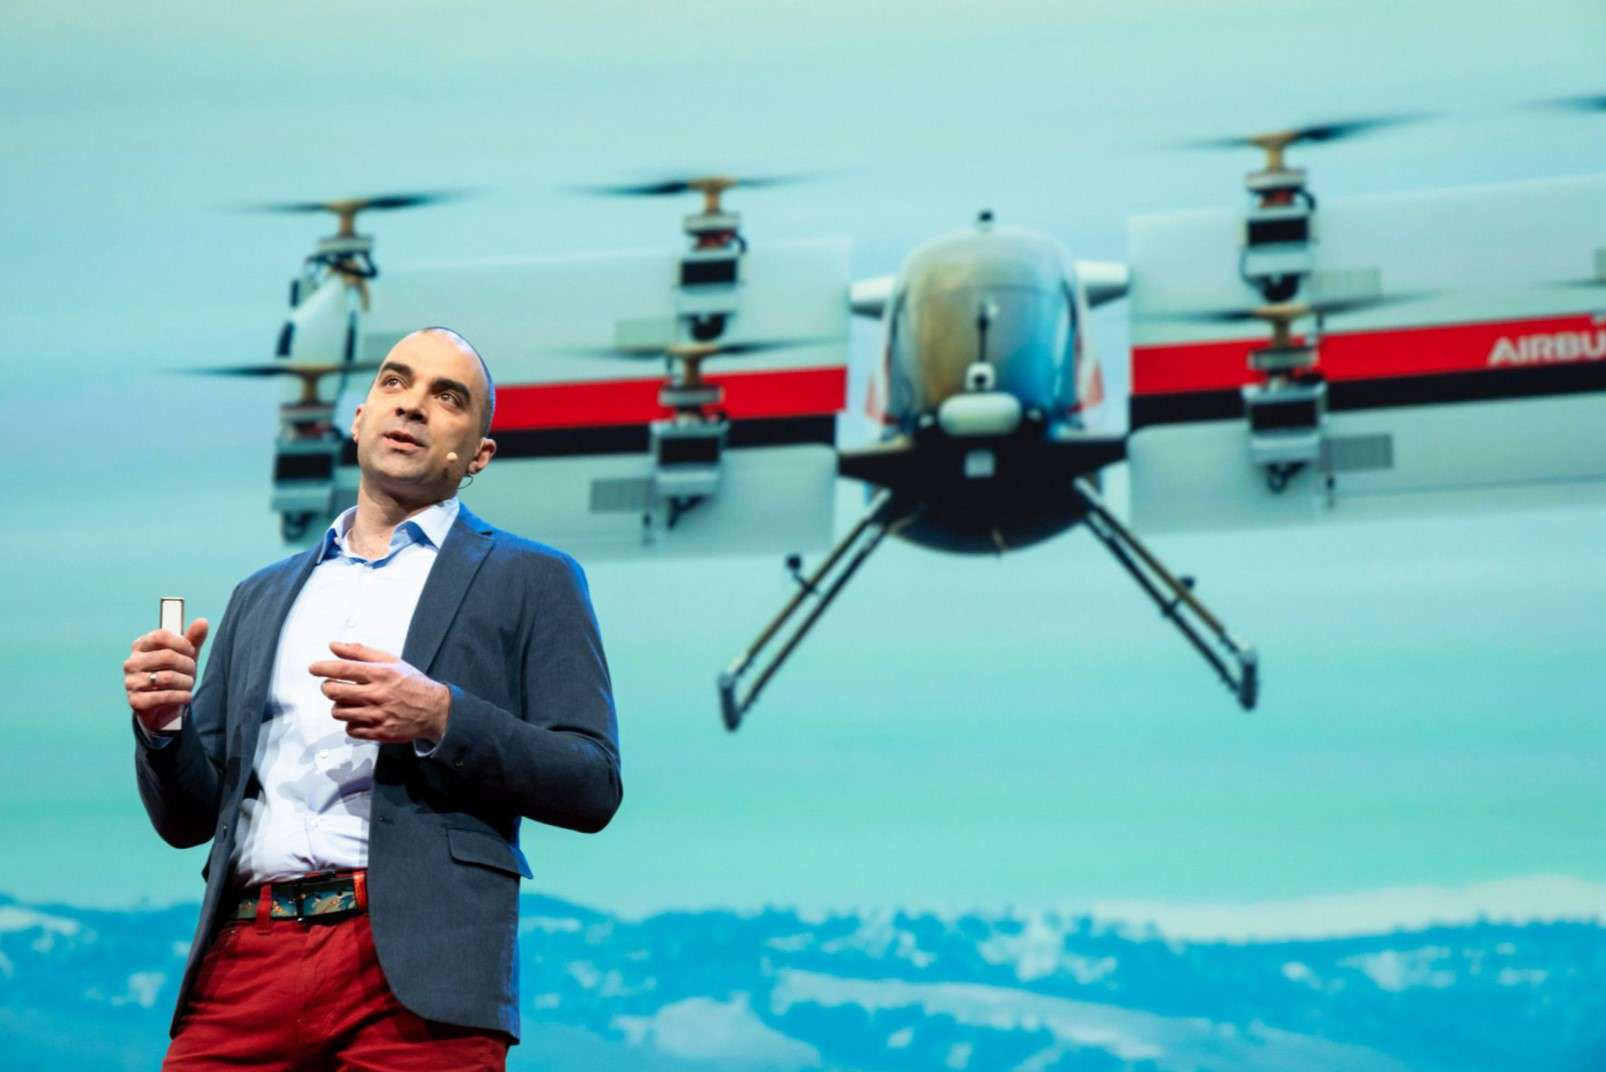 Rodin Lyasoff CEO of A3 by Airbus - Vahana passenger-carrying drone